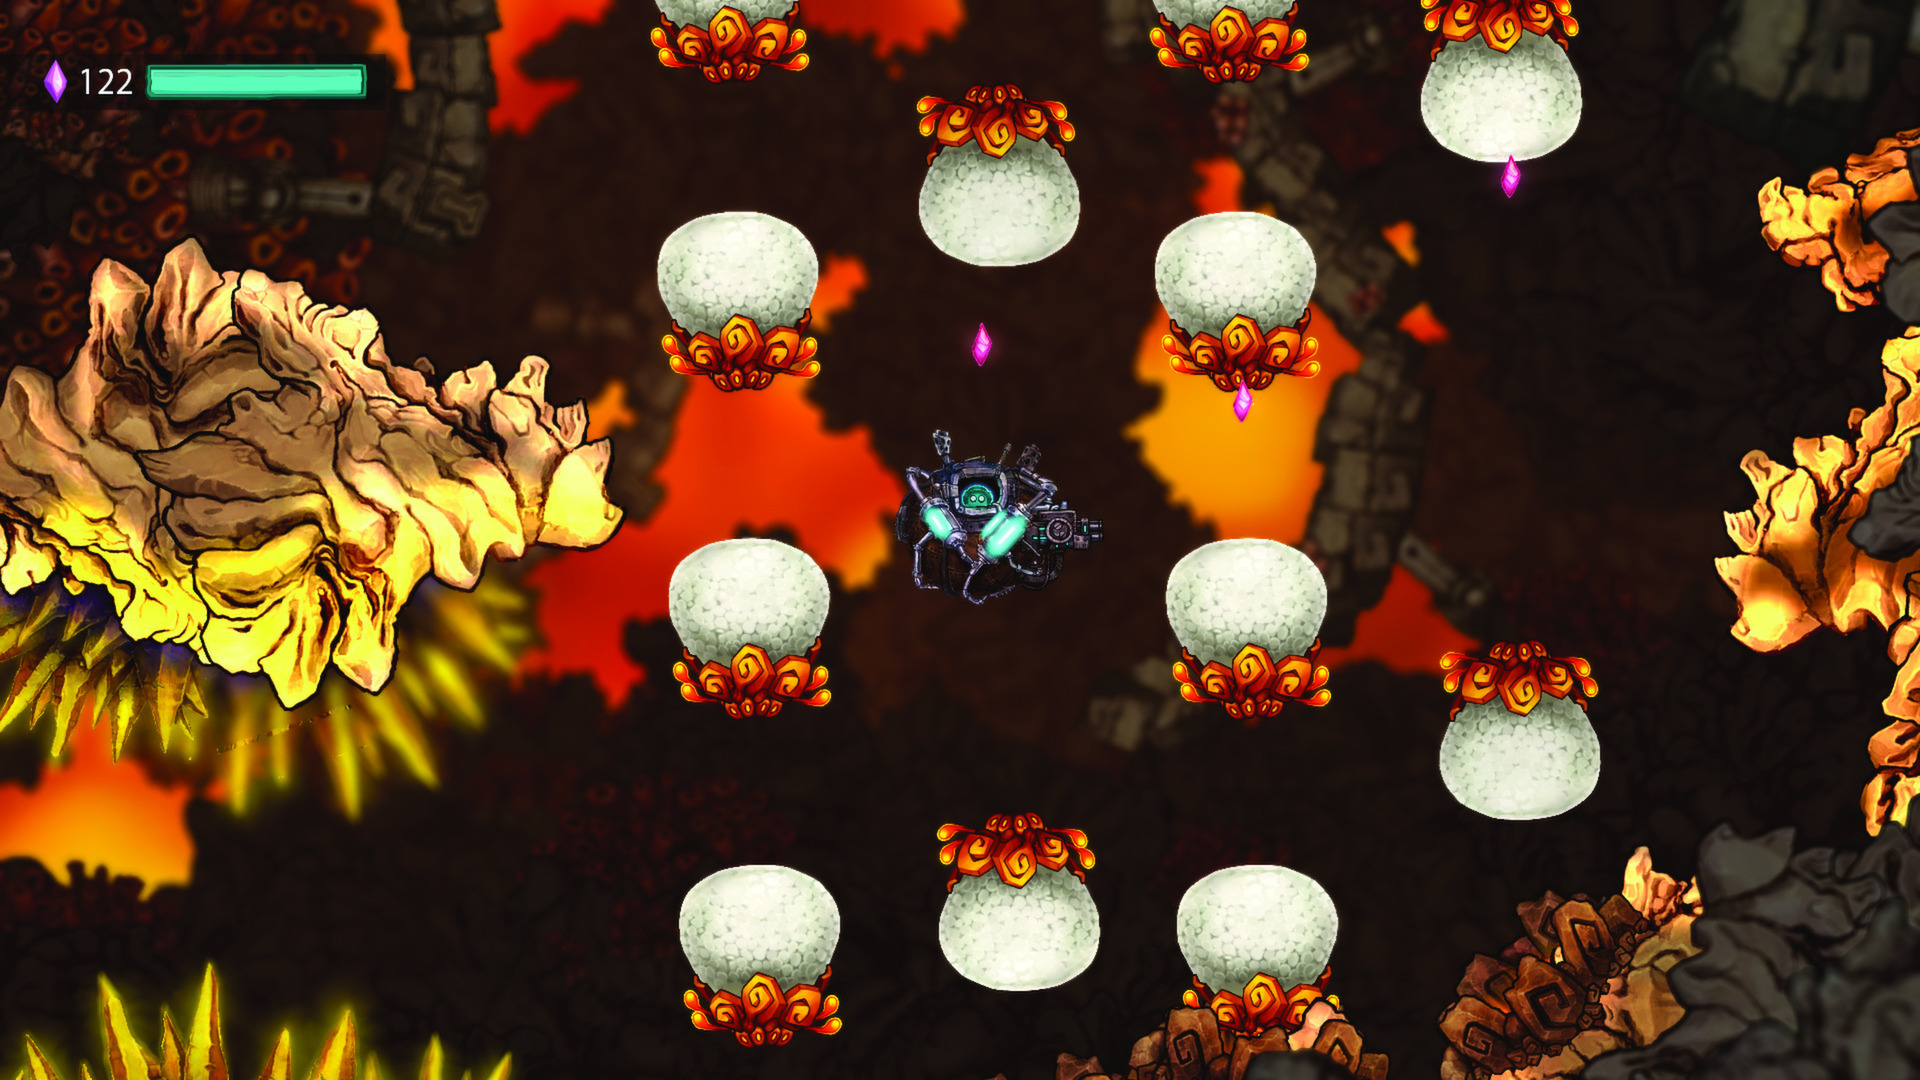 Beatbuddy: Tale of the Guardians from indie developers Threaks, along